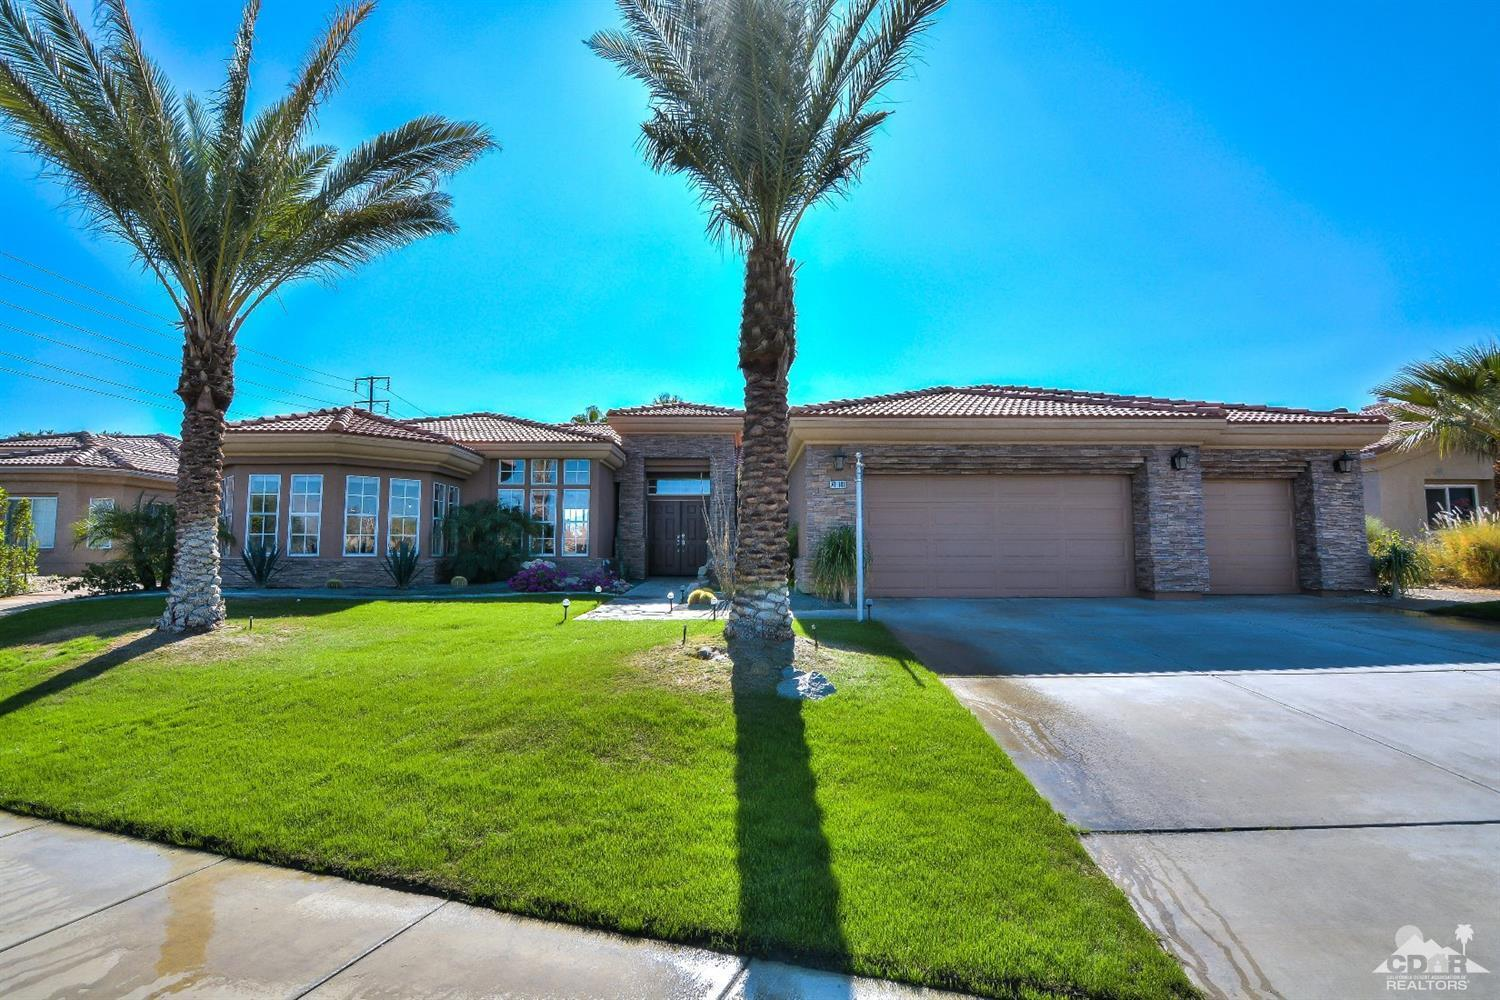 Owned SOLAR and thermal! Net Zero energy cost!! Additional thermal provides the pool with low cost heating. Ideal southern exposure with gorgeous rear yard. Walk up the beautiful flagstone pathway past 2 stunning entry ponds, to the double door entry and spacious foyer. Beautifully redone home with huge remodeled kitchen, family room, very open floor plan. Huge master suite has slider out to rear yard, see though fireplace to soaking tub, double vanity, walk in closet. Formal living and dining rooms are open to the family and kitchen areas. 3 more bedrooms and 2 full baths complete this gorgeous interior. Floor to ceiling stacked stone fireplace in living room. 3 Cascading waterfalls into resurfaced pebble tech salt water pool. Large spa for stargazing at night. Beautifully landscaped lush yard with several fruit trees. Oversized 3 car garage with Tesla charger installed. Beautiful stacked stone exterior. Huge driveway parking, plus ample street parking. Cul de sac location. No HOA Dues. Includes 2 brand new air conditioning units as well as a brand new pool heater!!!